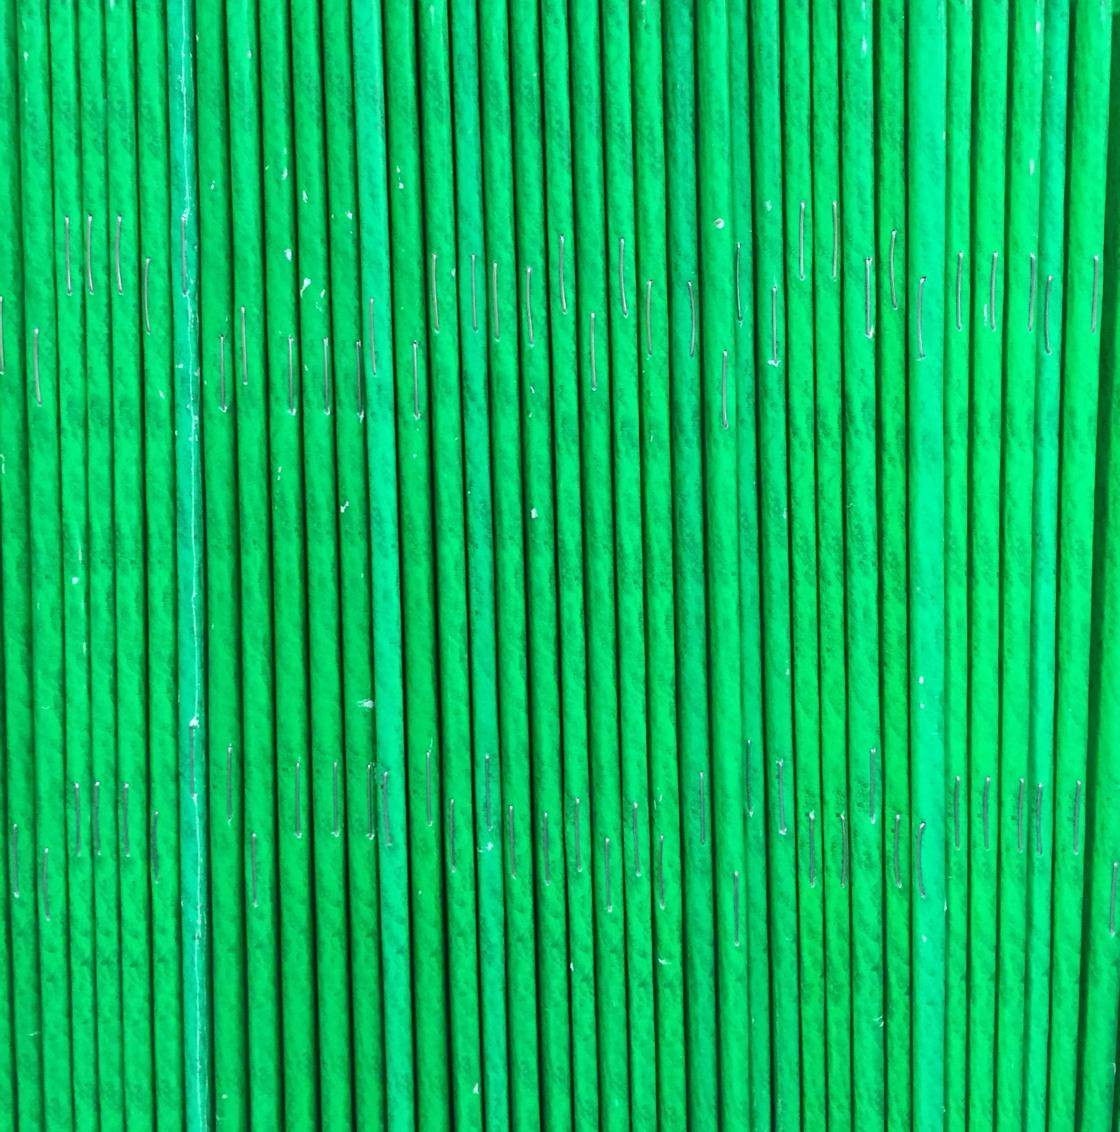 green_iphone_photos-27 no script